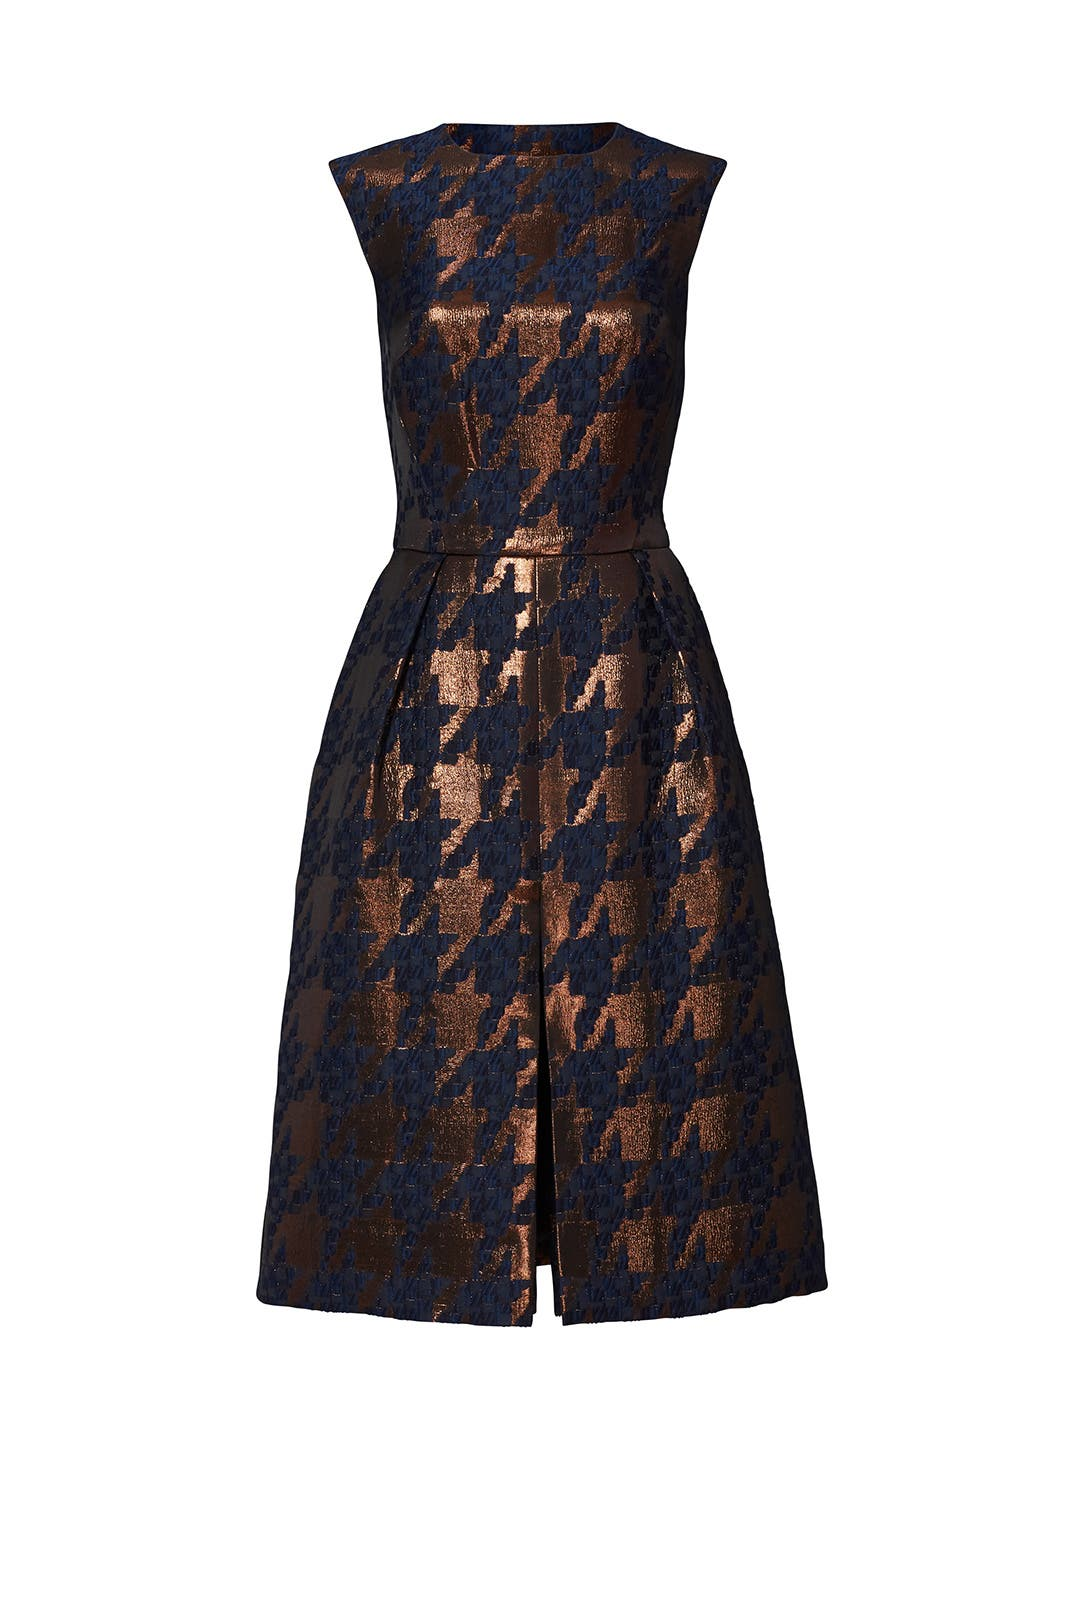 Bronze Houndstooth Dress by Martin Grant for $230 | Rent the Runway